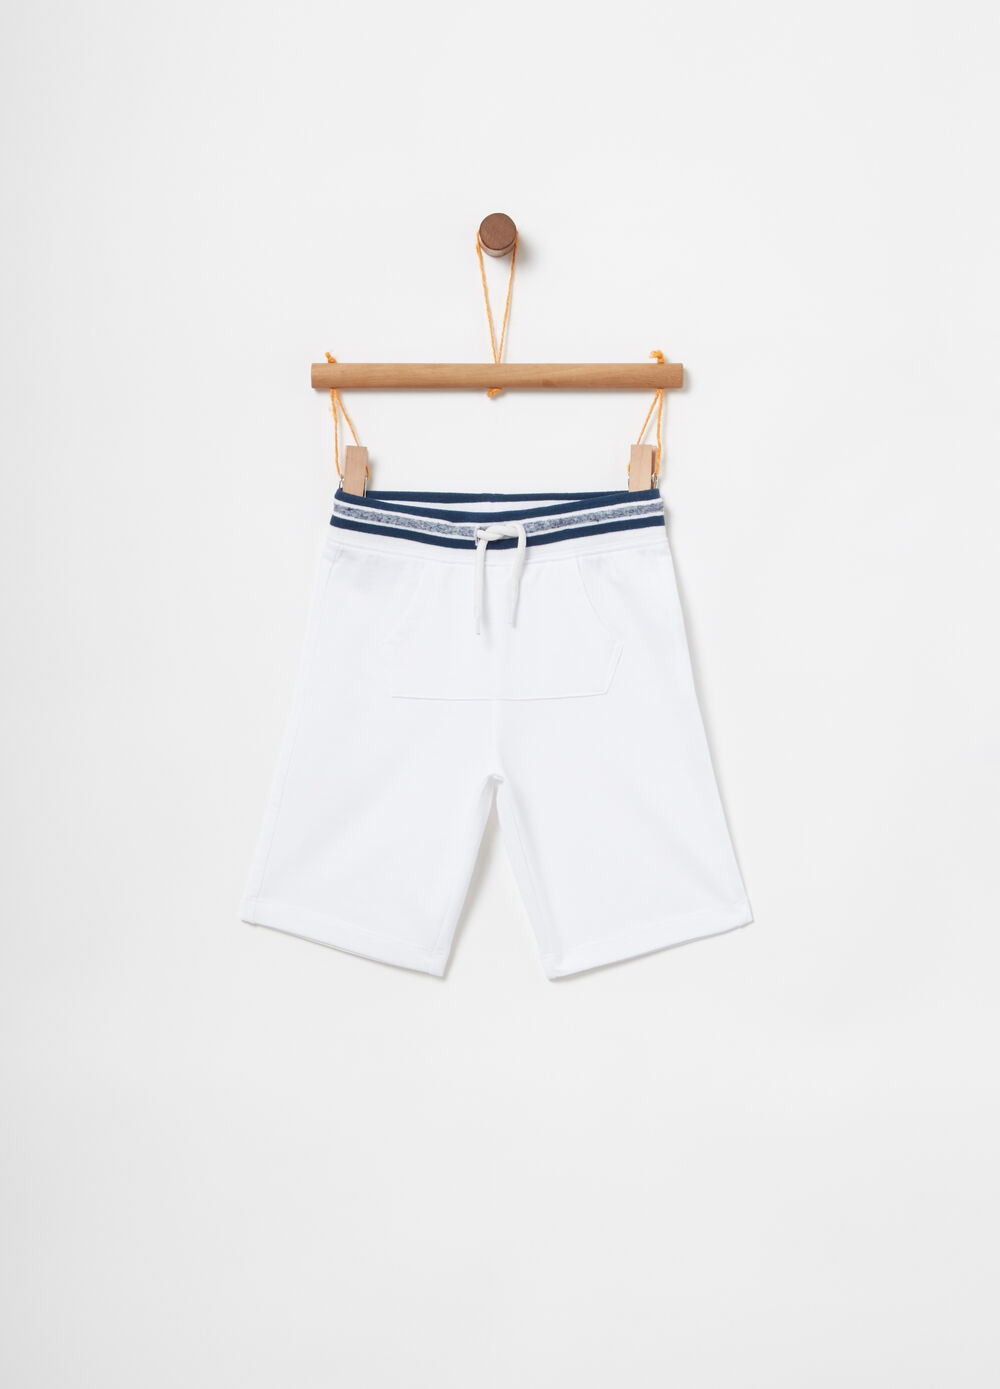 Shorts with drawstring and pouch pocket